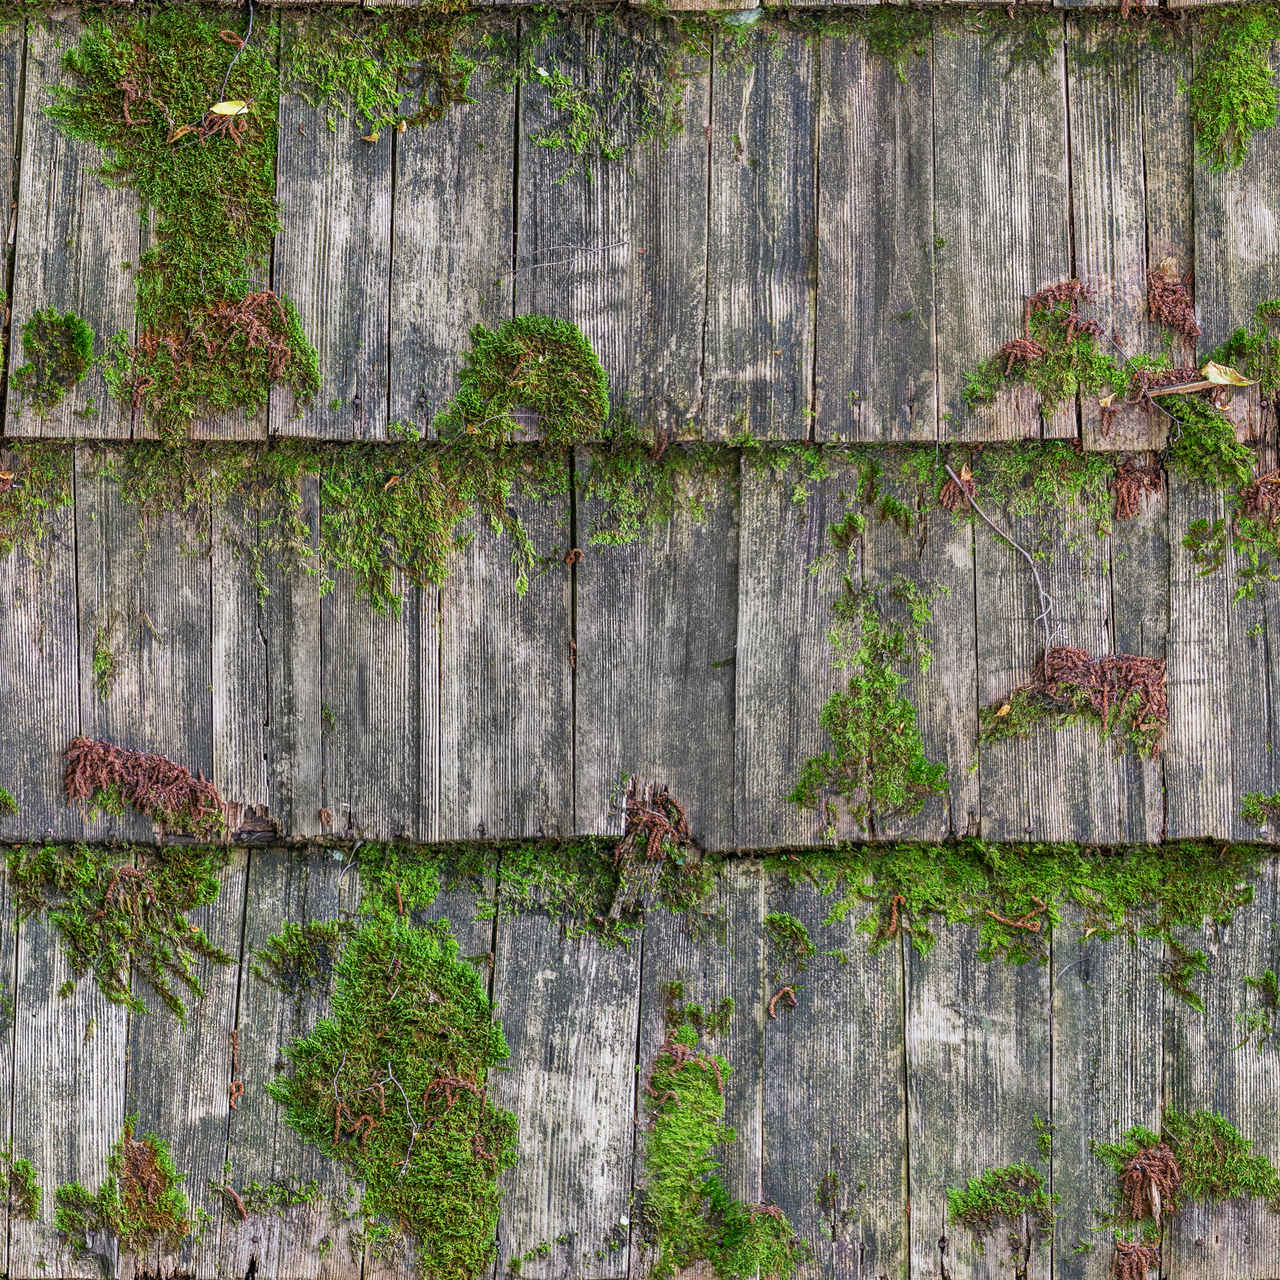 Wood Mossy Roof Seamless Texture